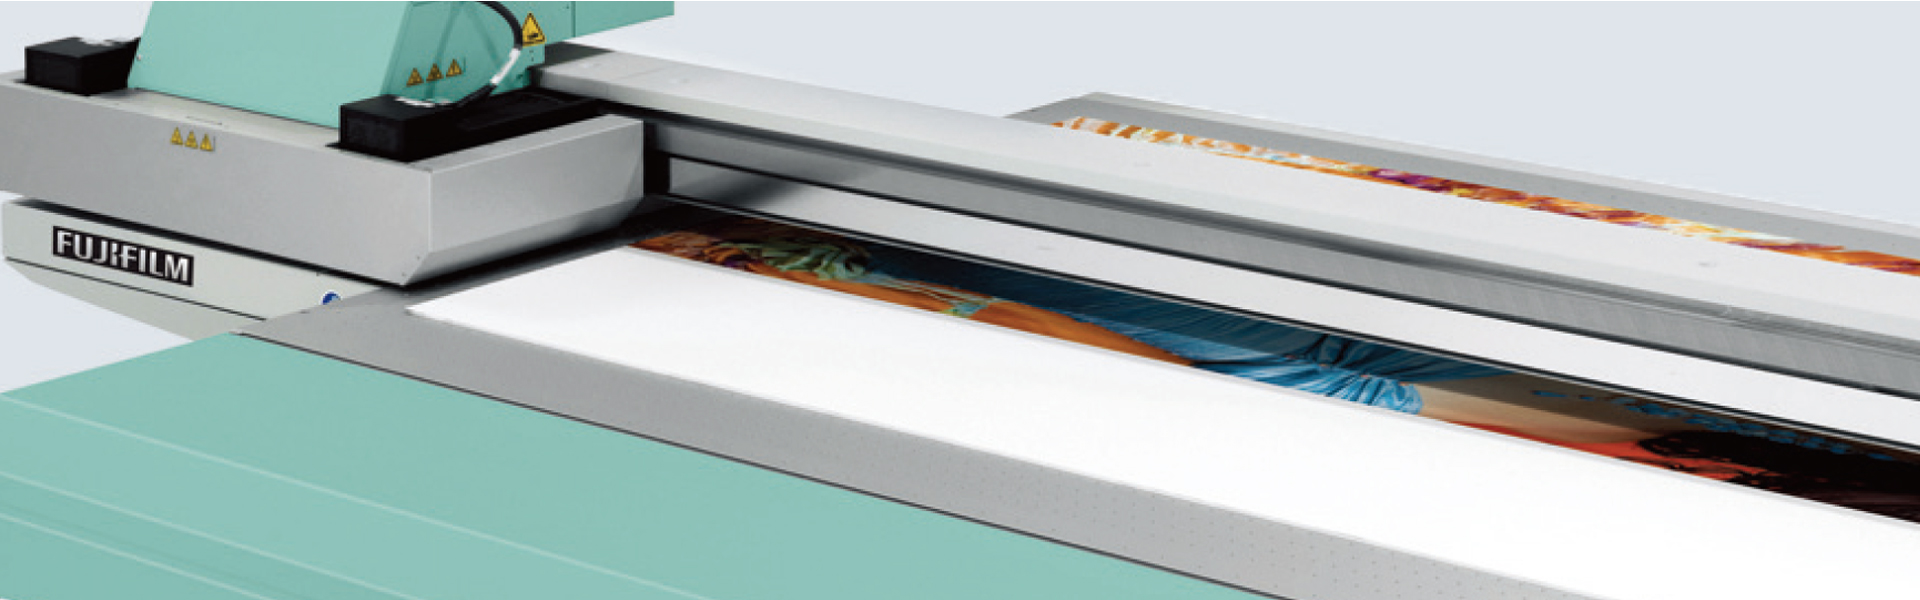 [photo] Acuity EY flatbed printer up-close